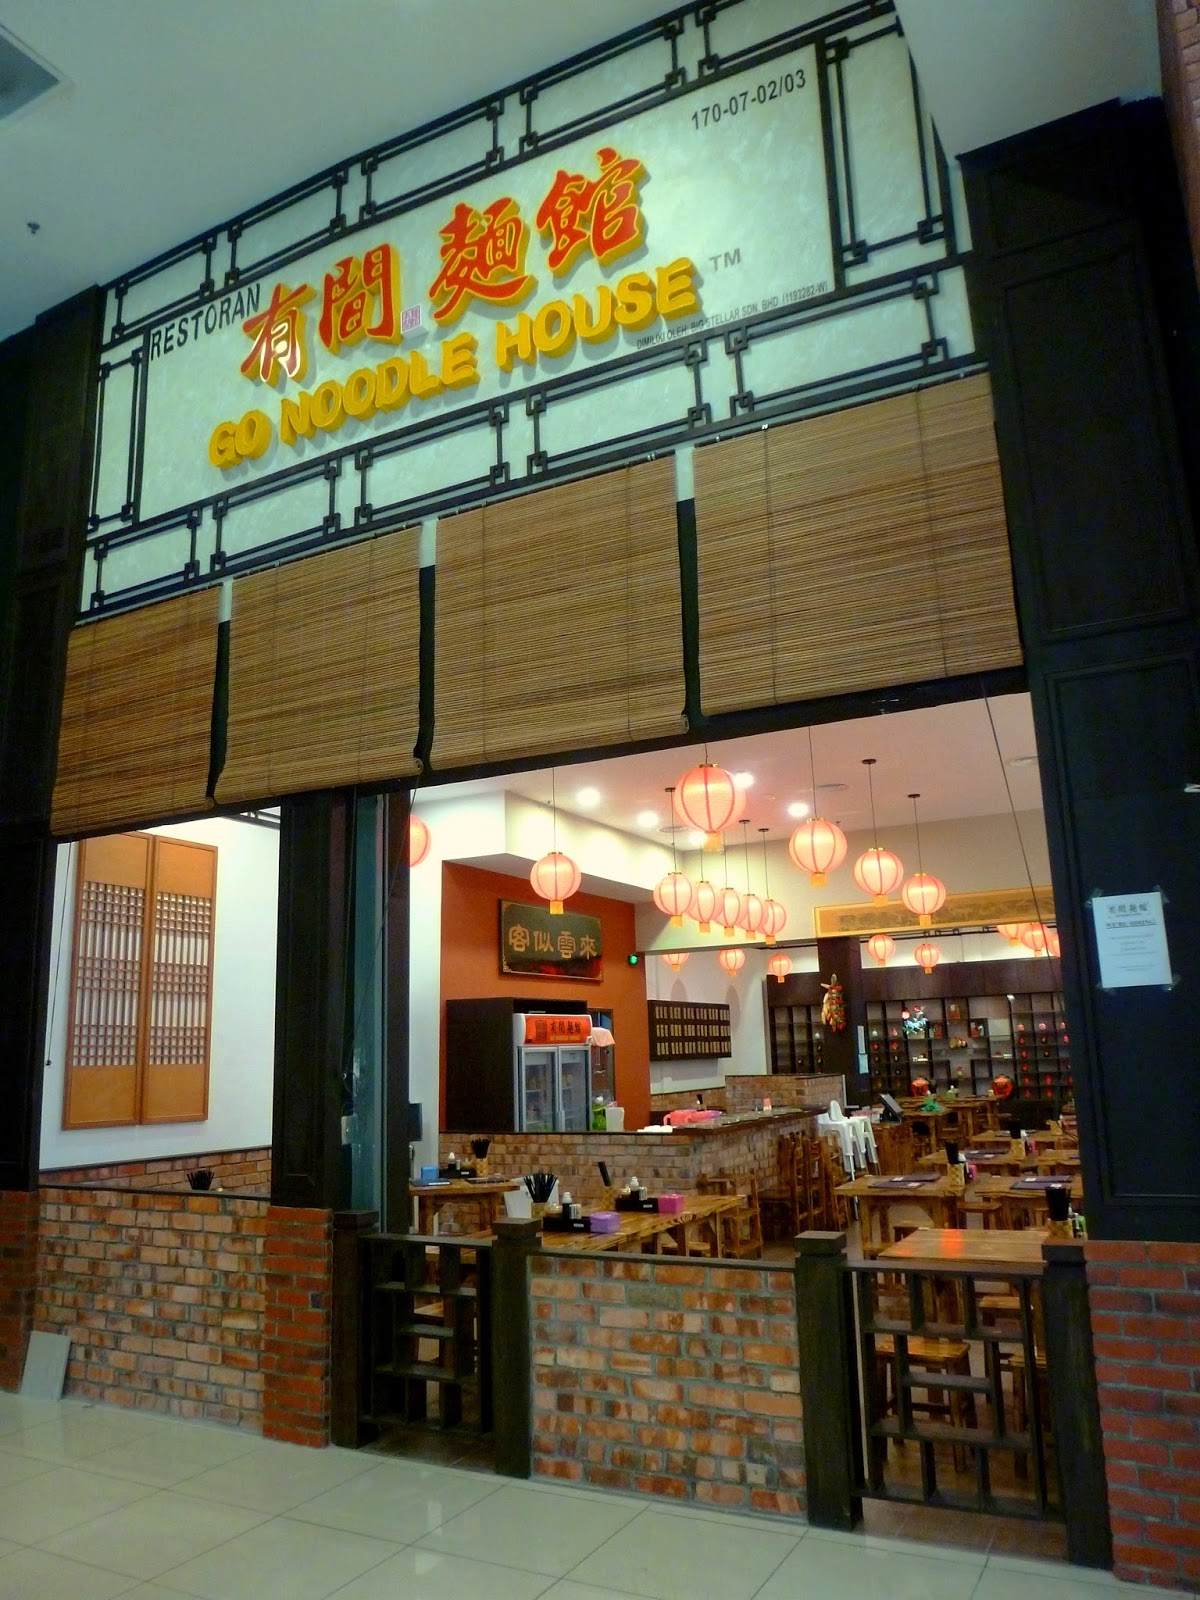 Penang Food For Thought: Go Noodle House